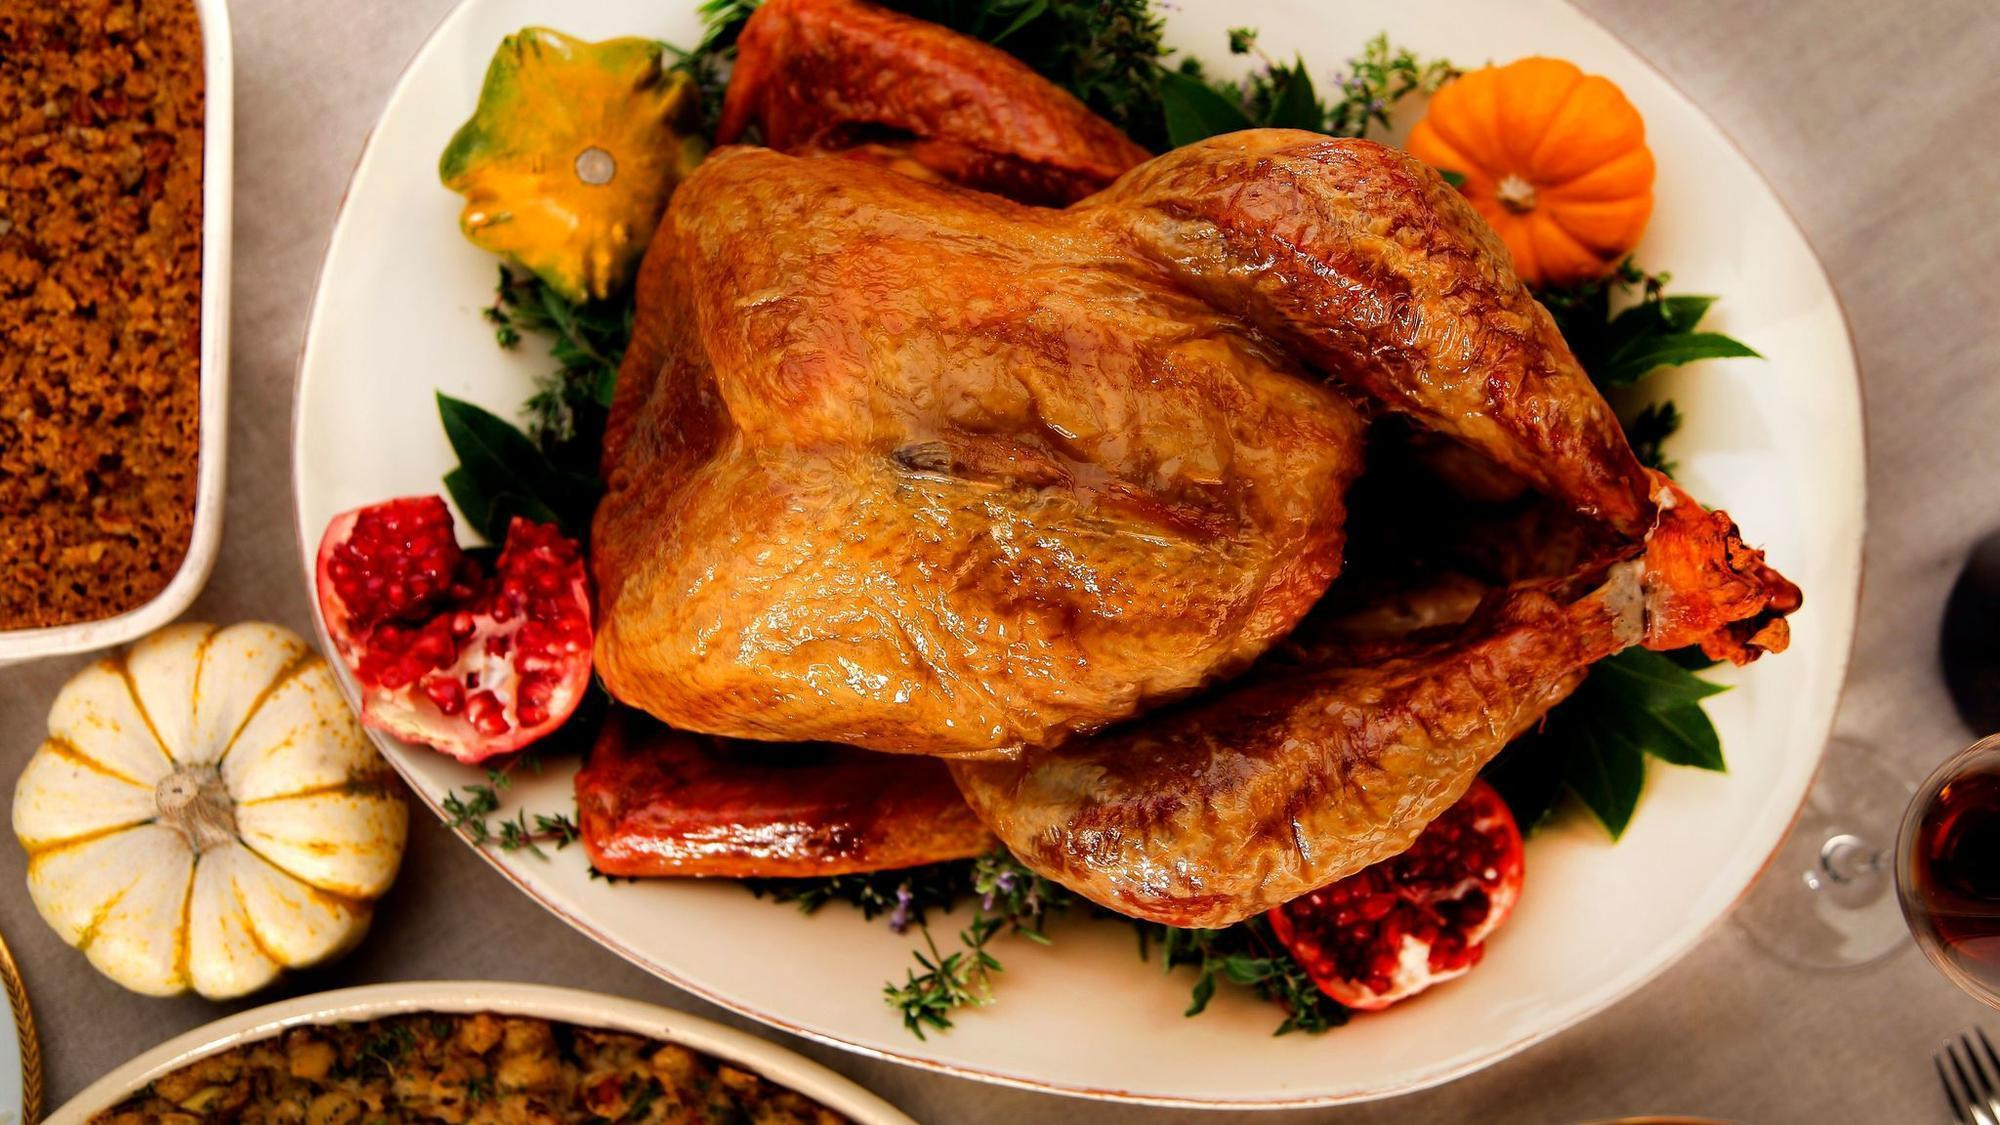 Cooked Turkey For Thanksgiving  Turkey 101 How to cook a Thanksgiving turkey LA Times